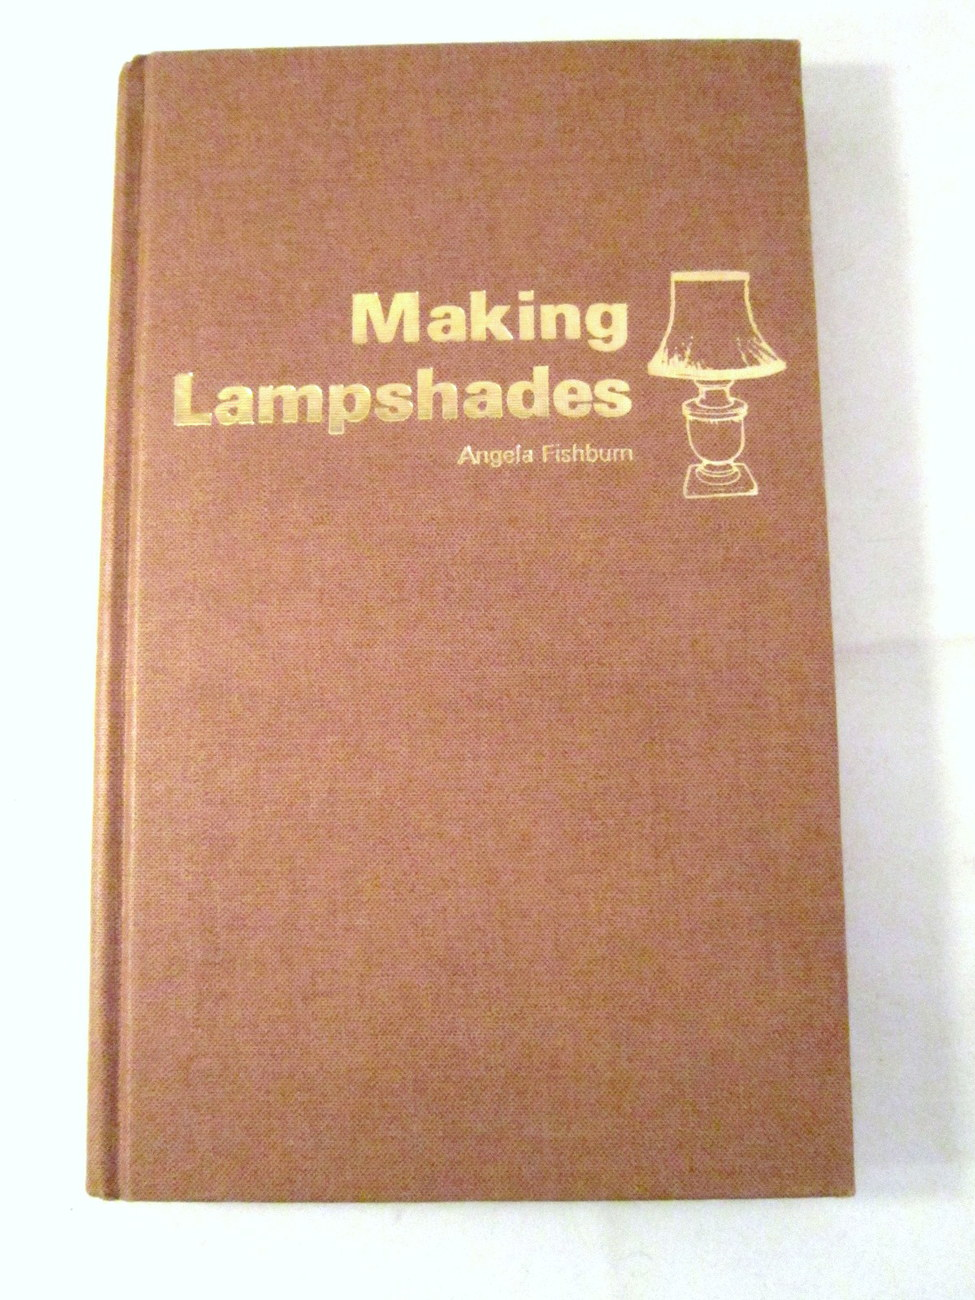 Primary image for Making Lampshades by Angela Fishburn 1977 DIY Hardback Hand Crafting